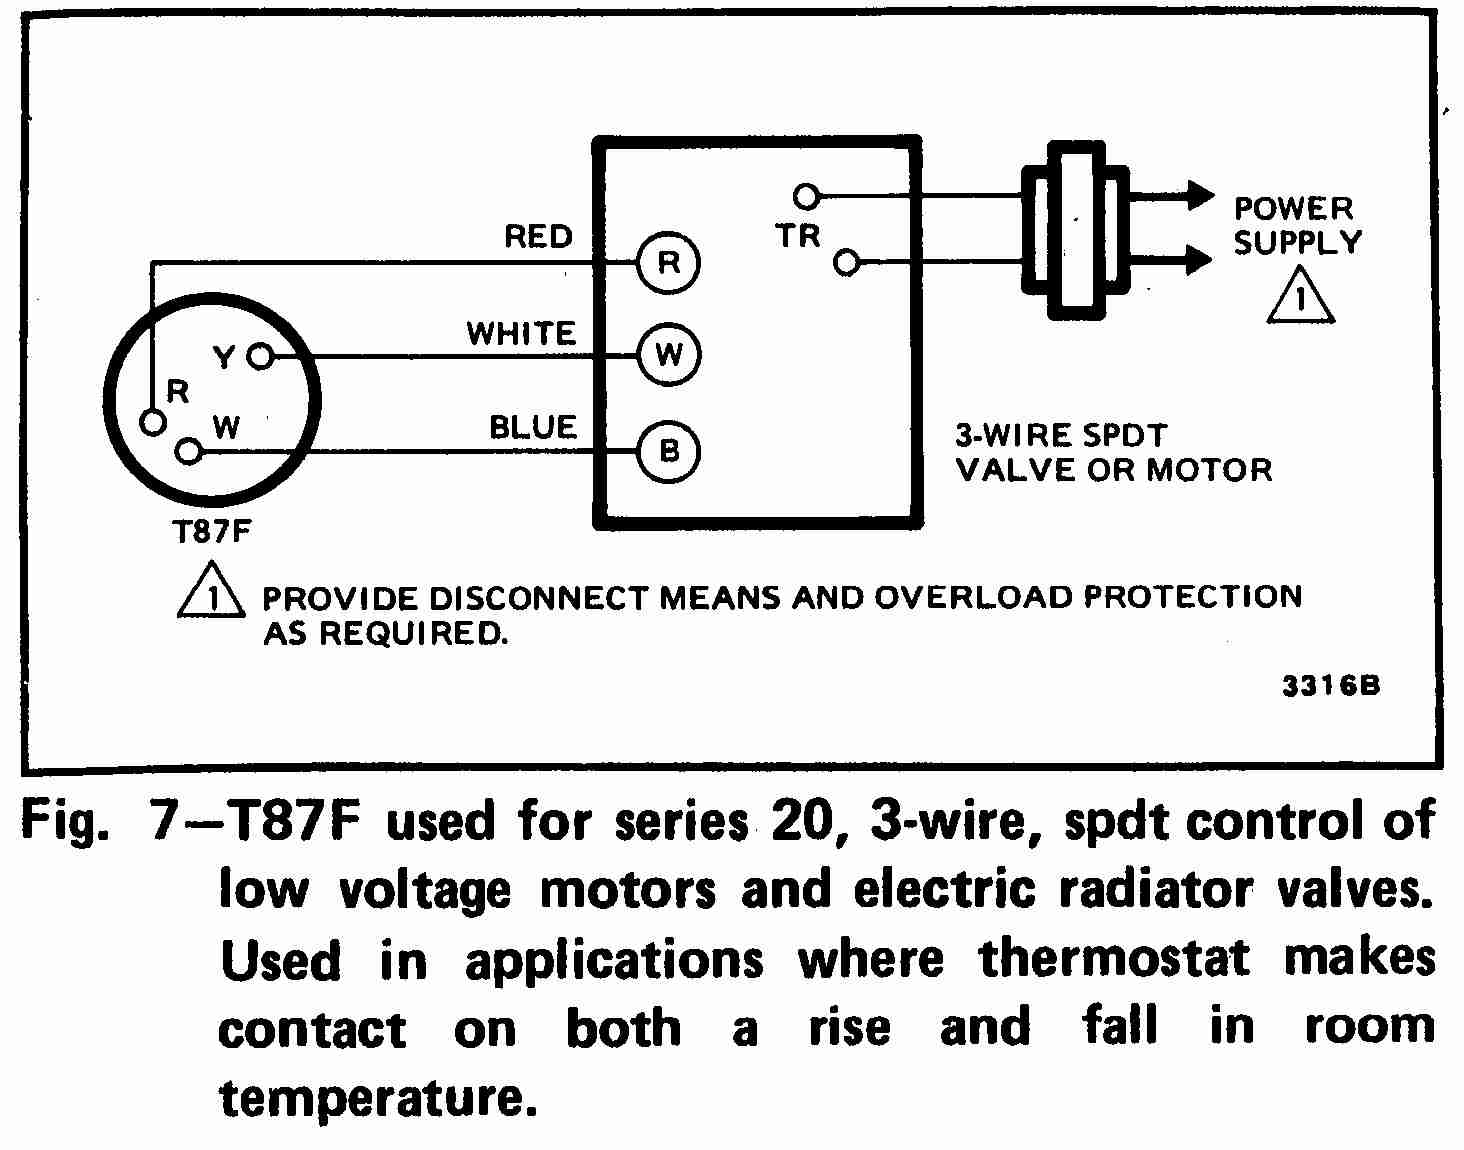 TT_T87F_0002_3W2_DJF room thermostat wiring diagrams for hvac systems thermostat wiring diagram at soozxer.org